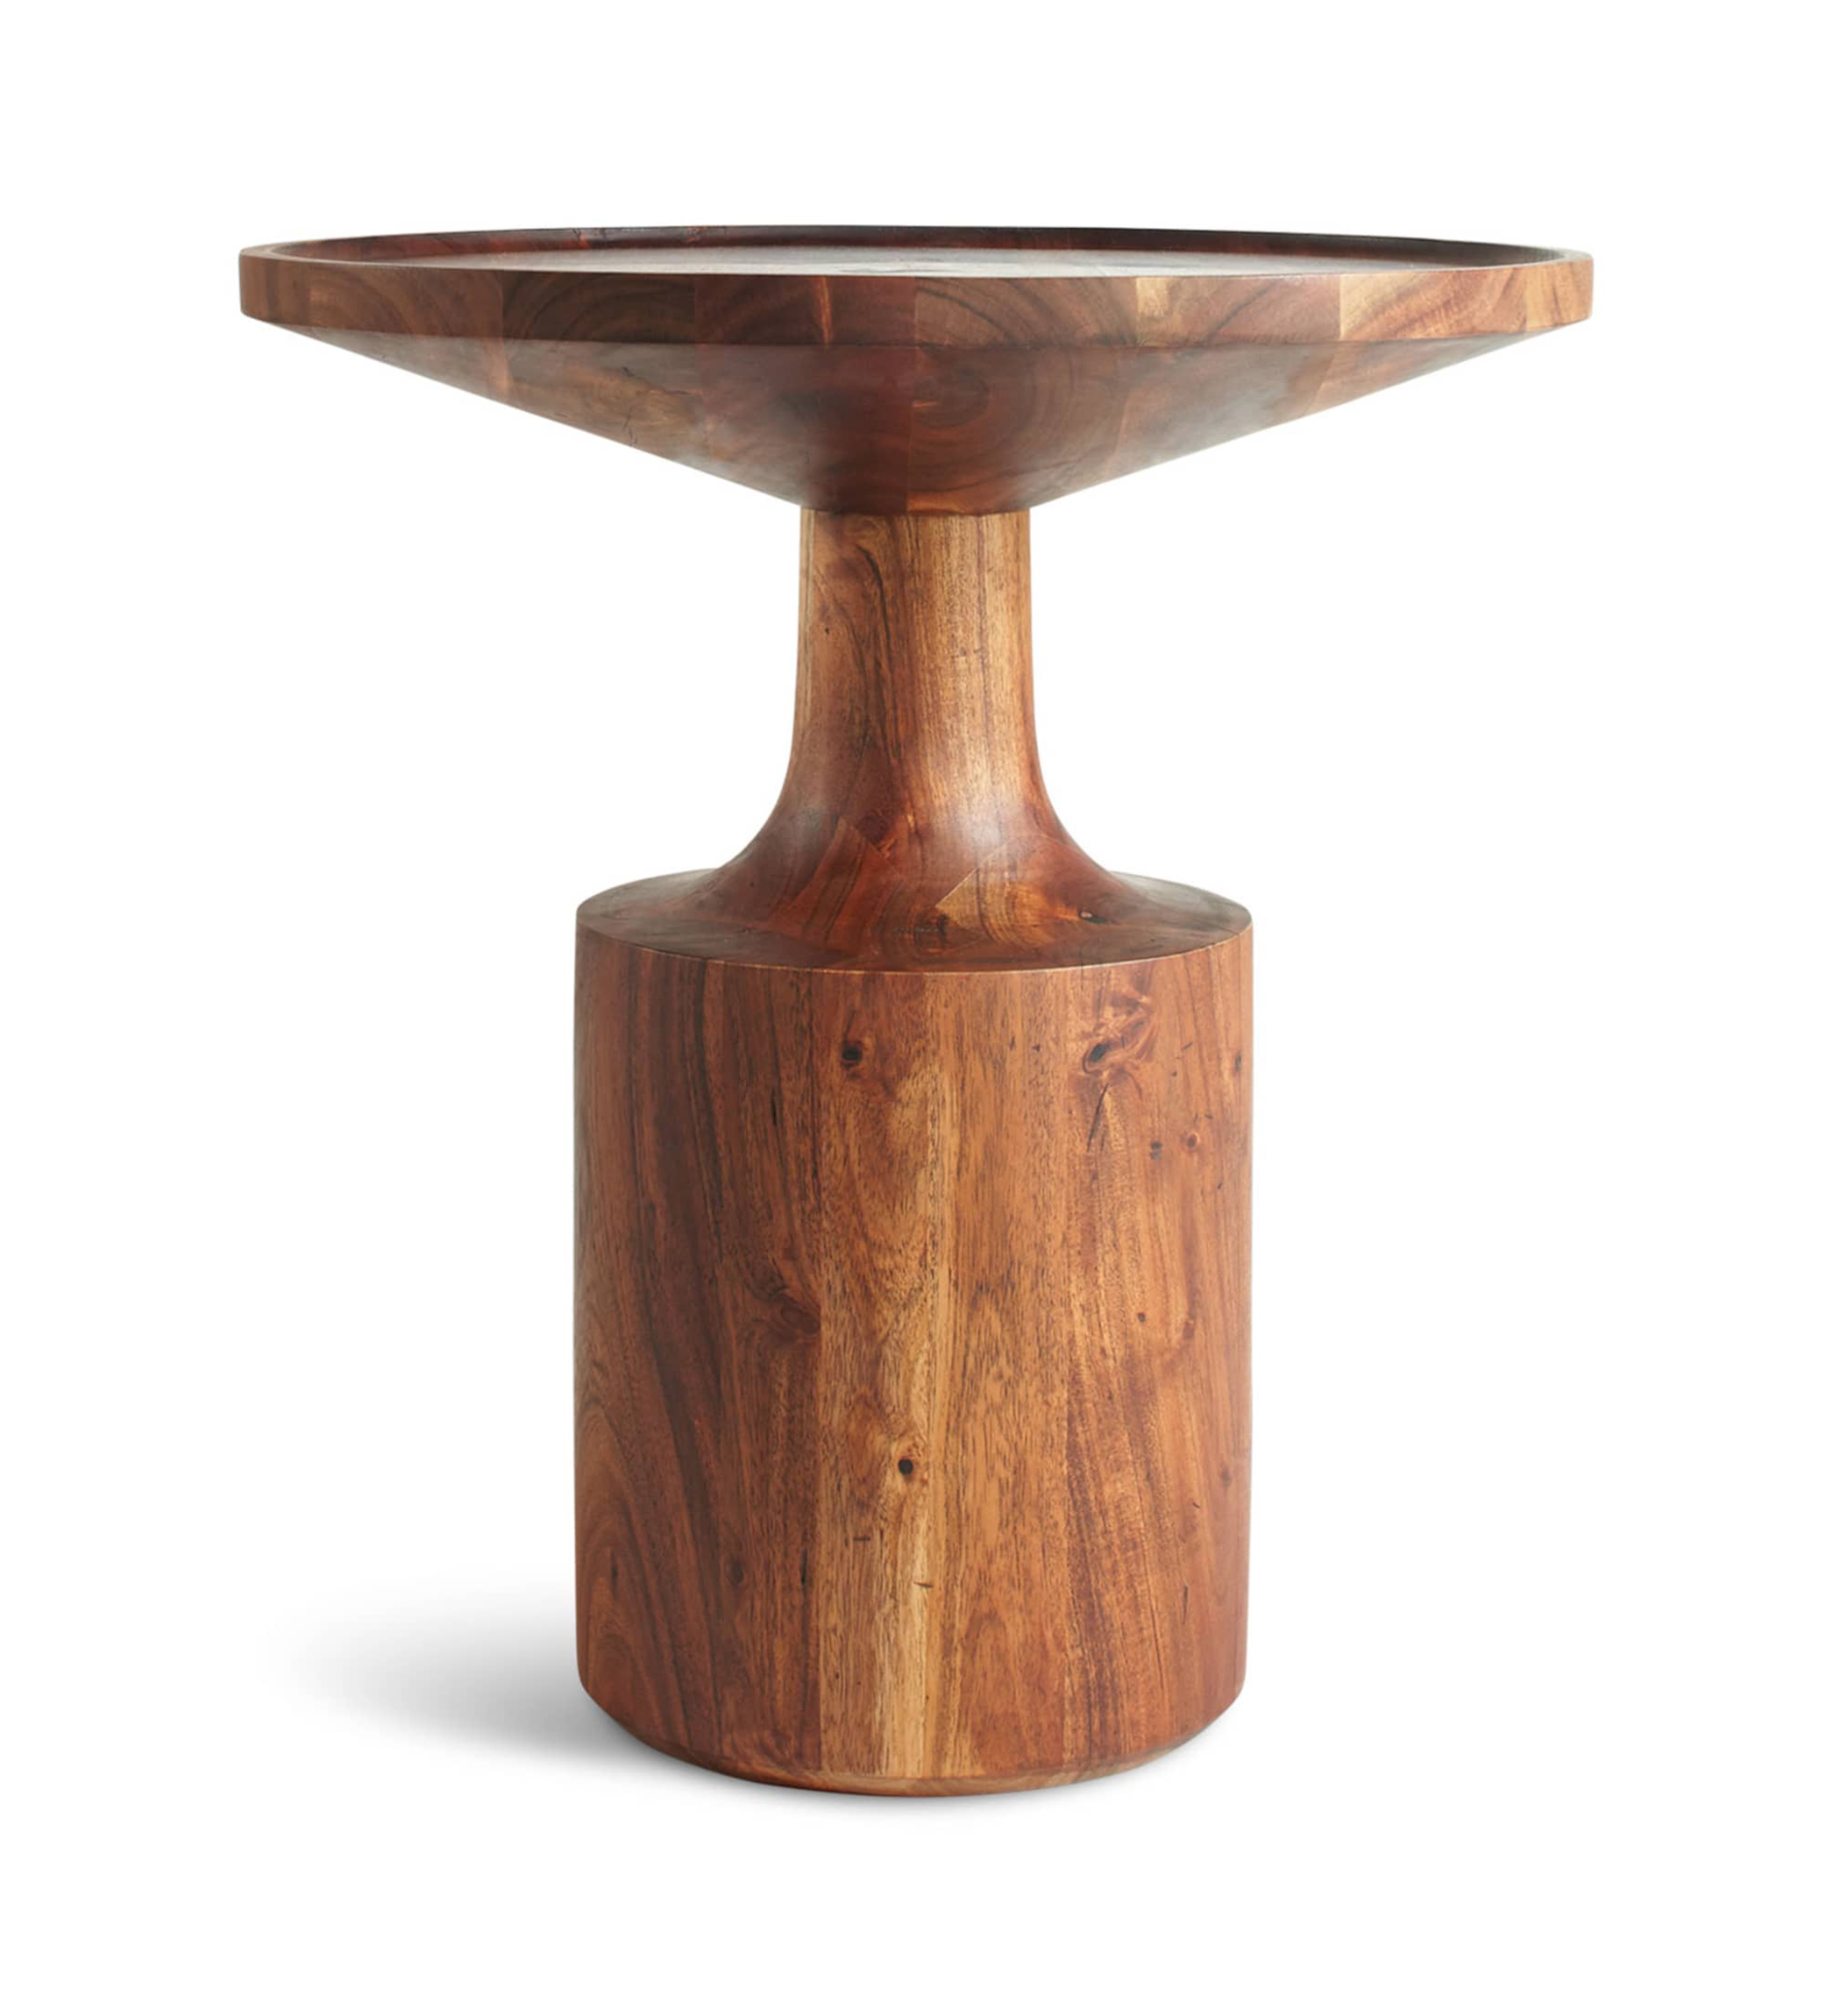 tn1_sidtal_wd_h_turn-tall-side-table_1.jpg